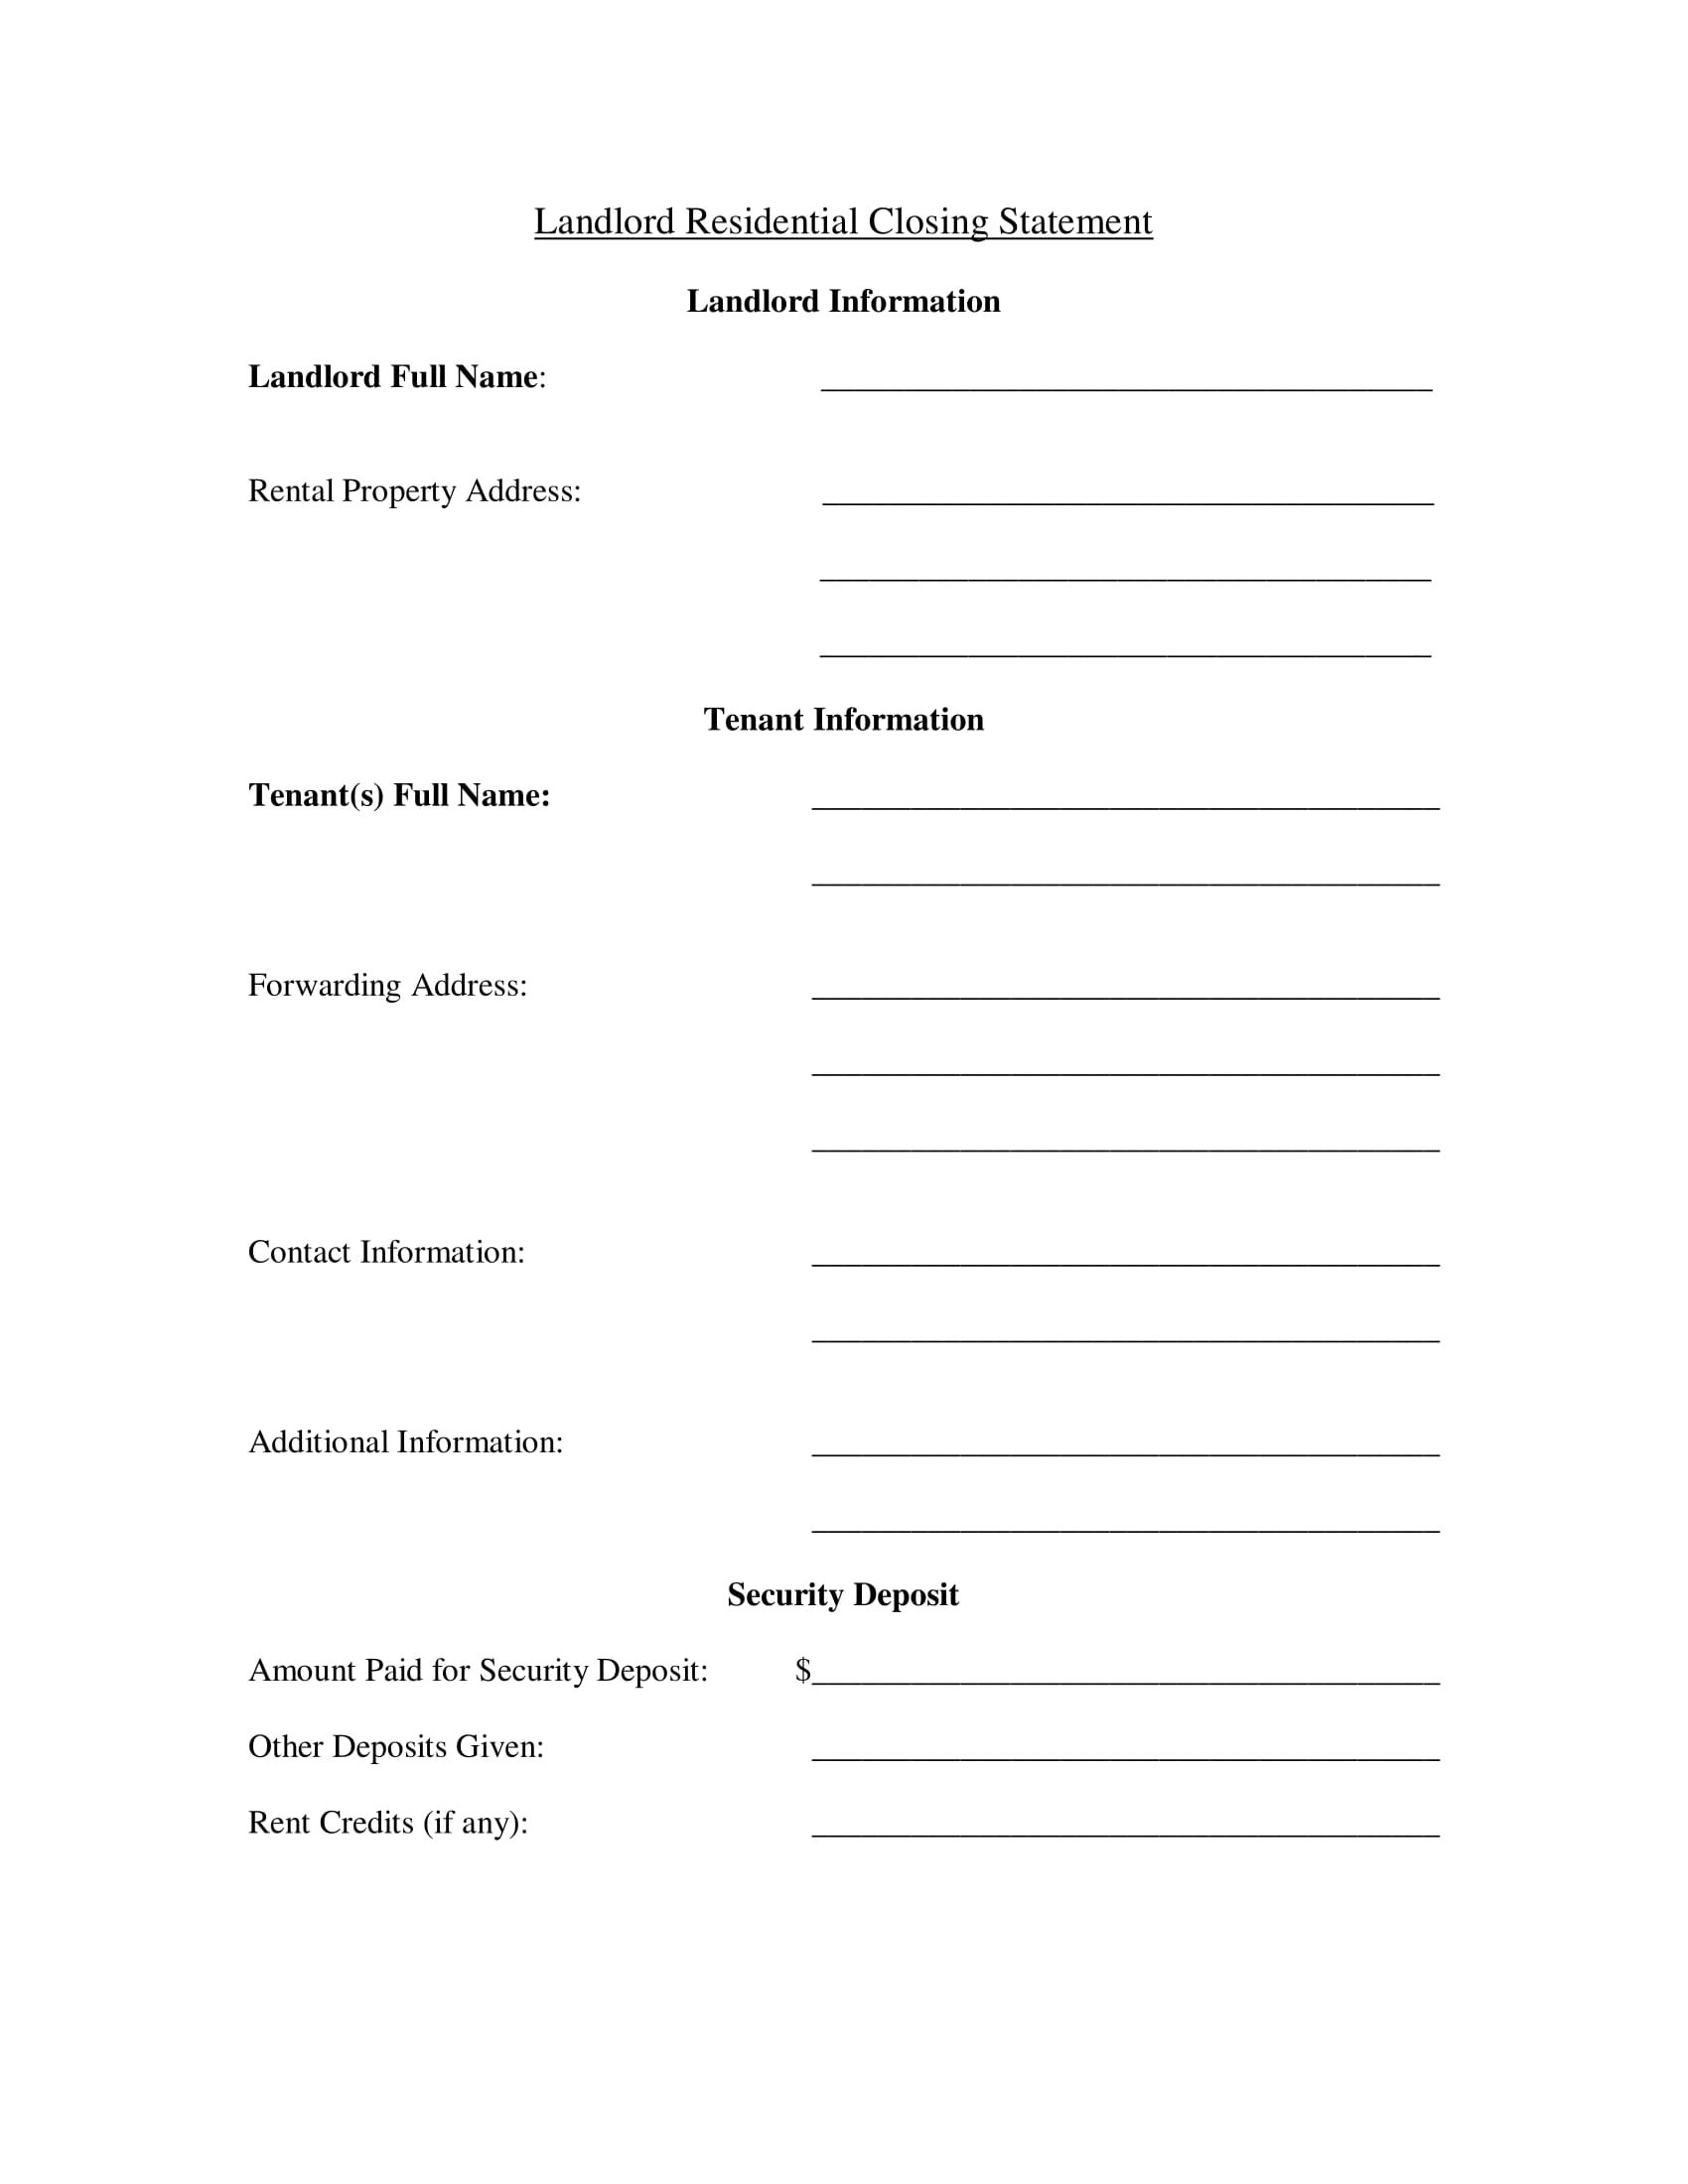 landlord residential closing statement form 1